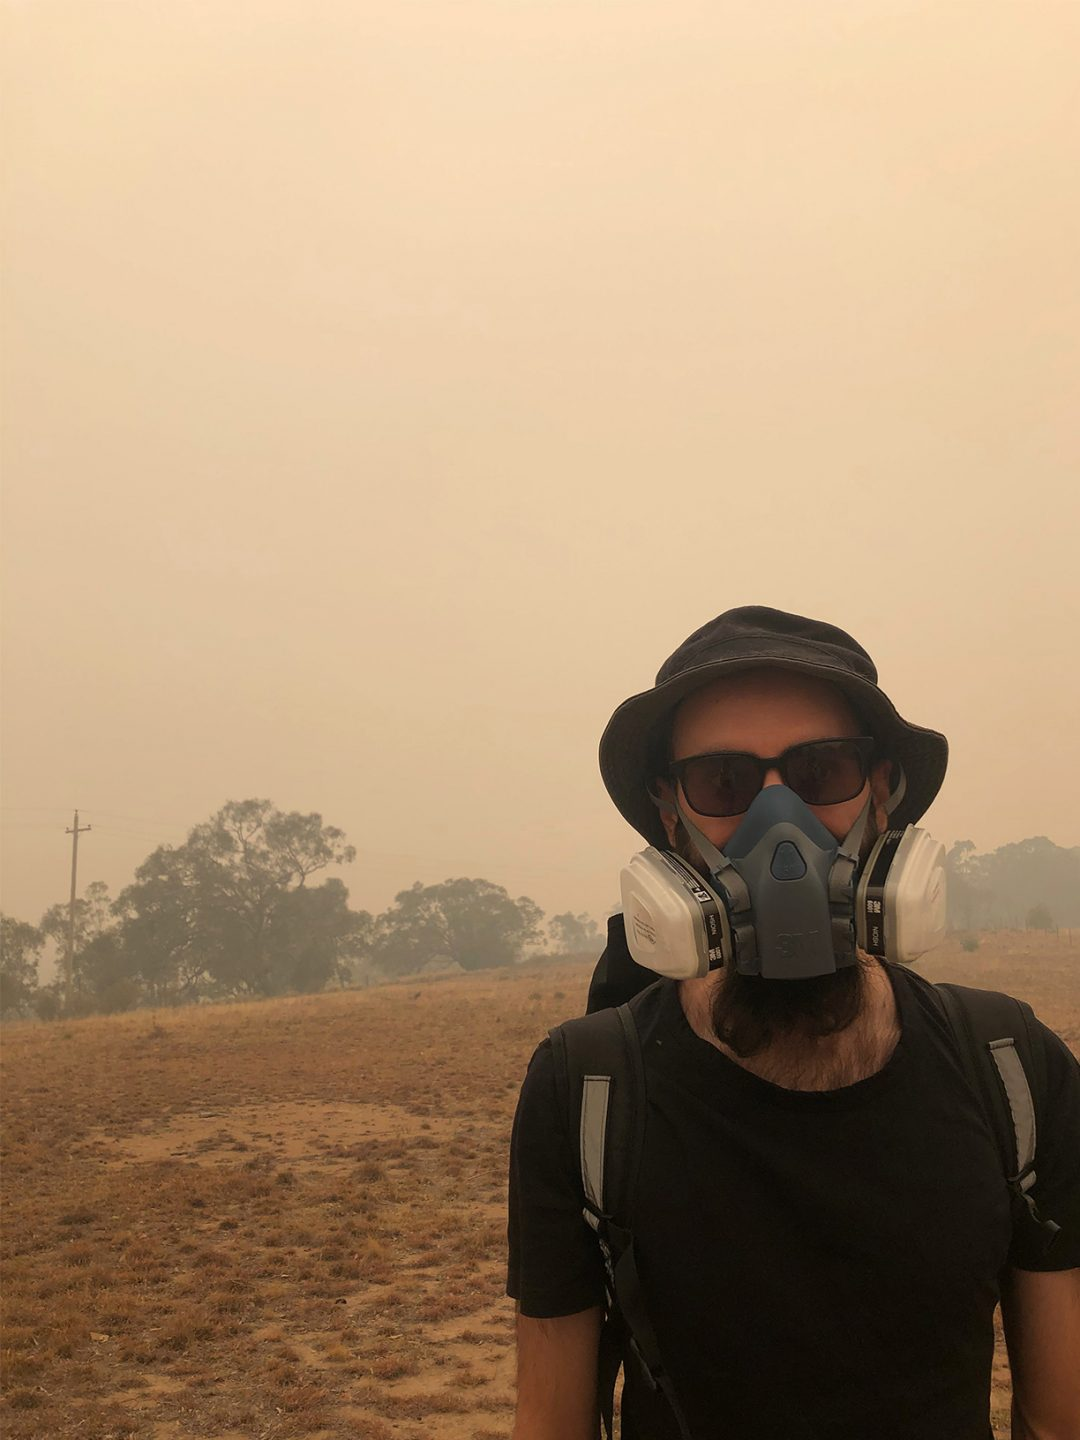 Man in protective face mask